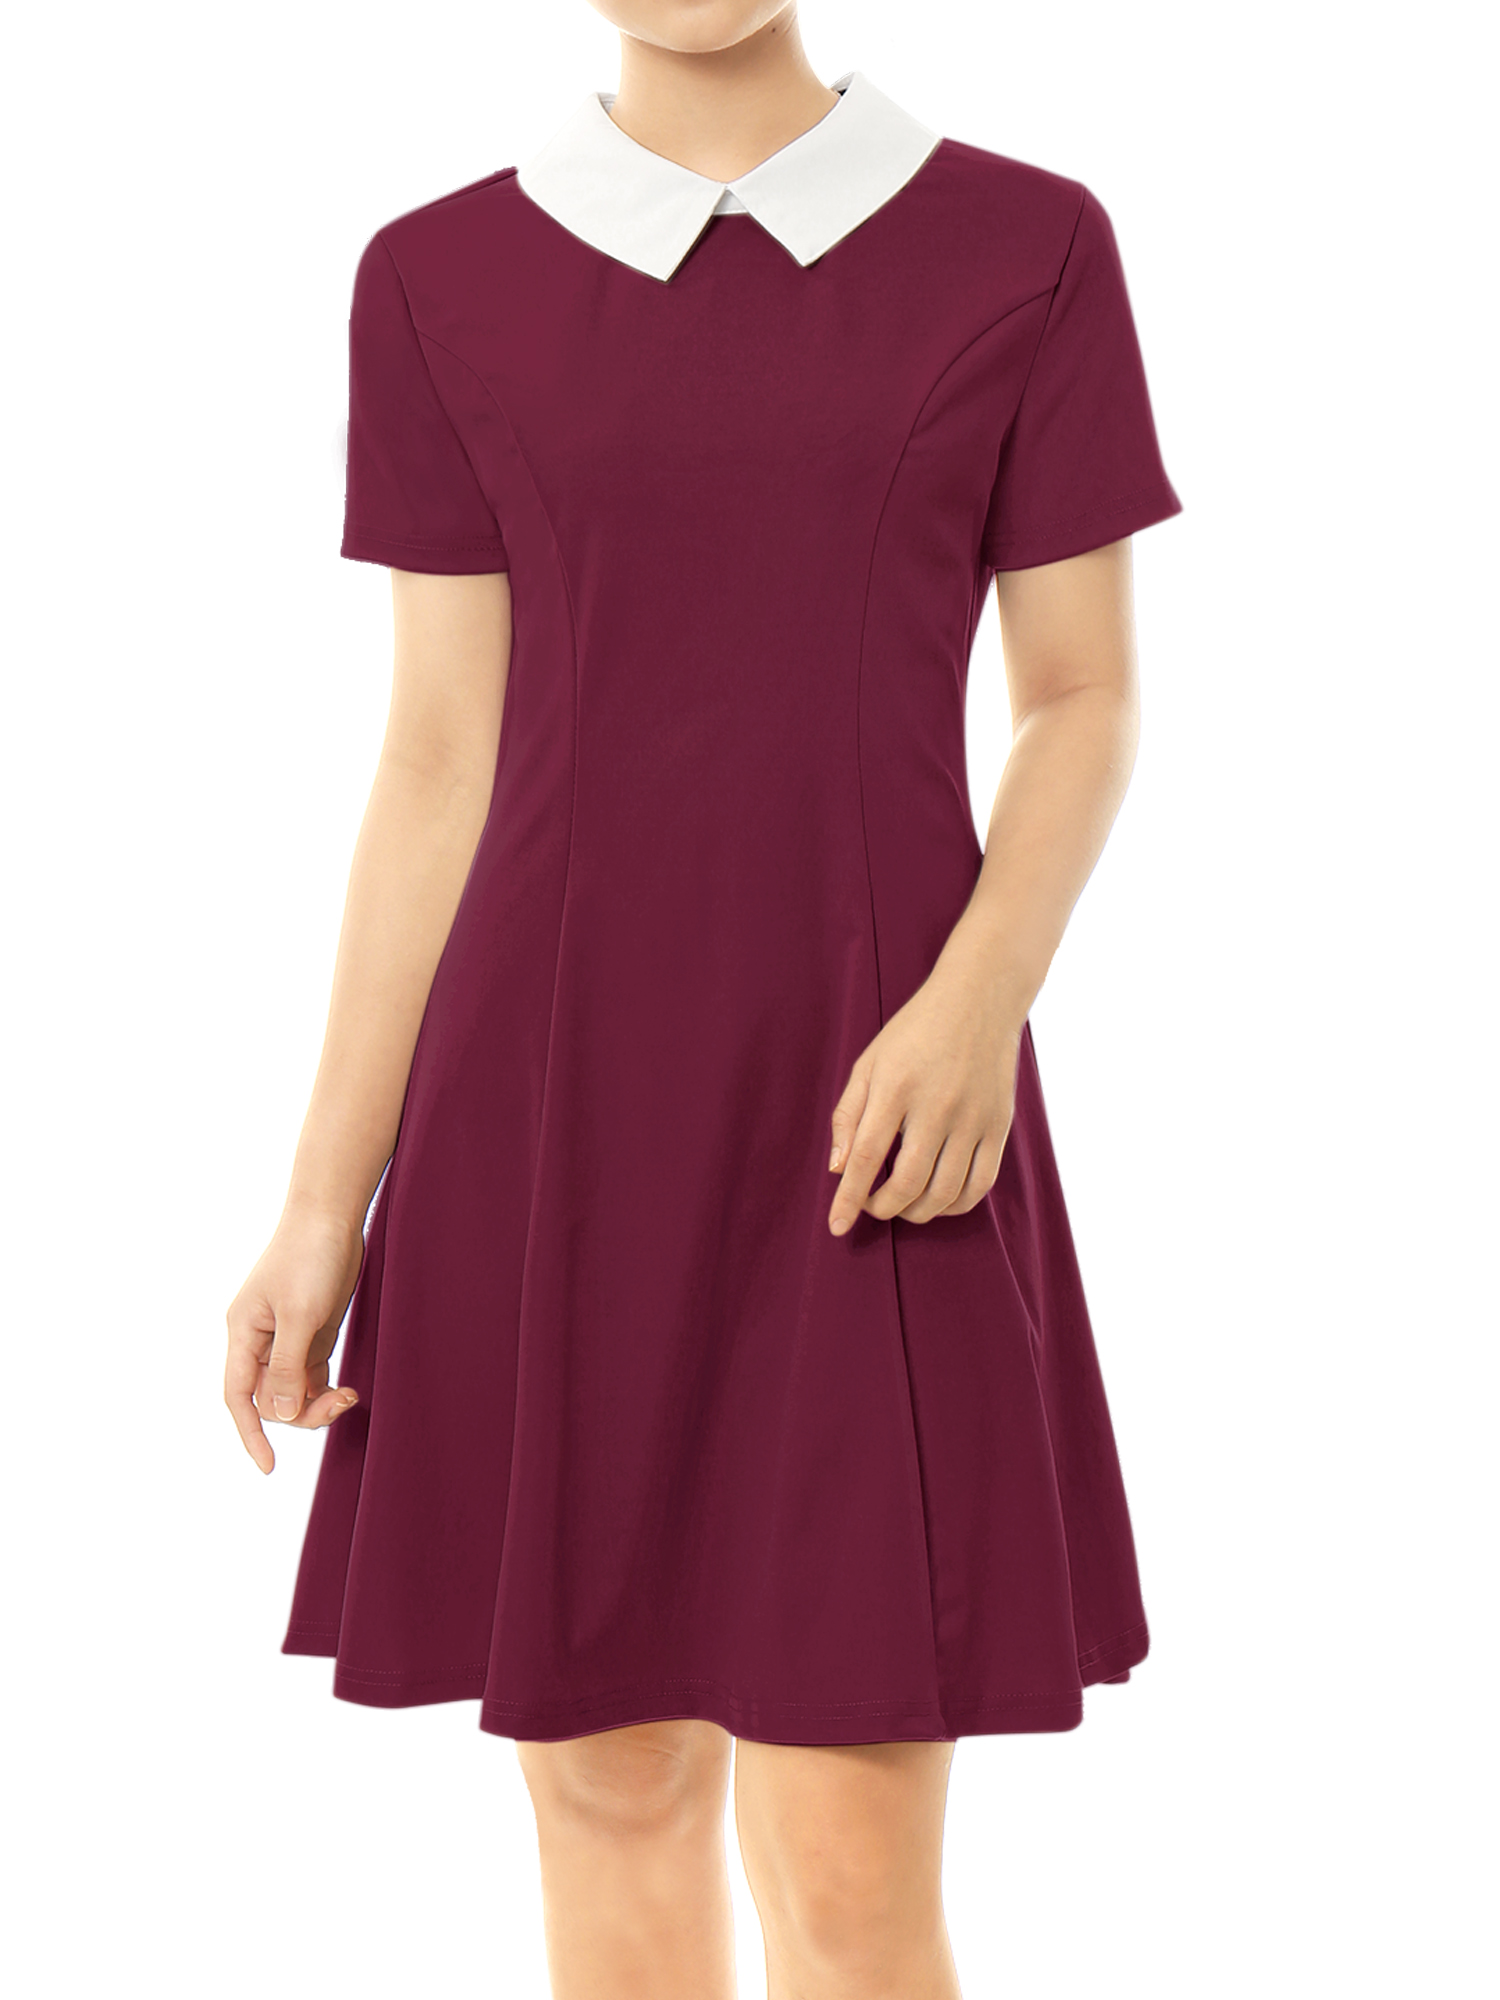 Women Doll Collar Short Sleeves Fit and Flare Dress Red L